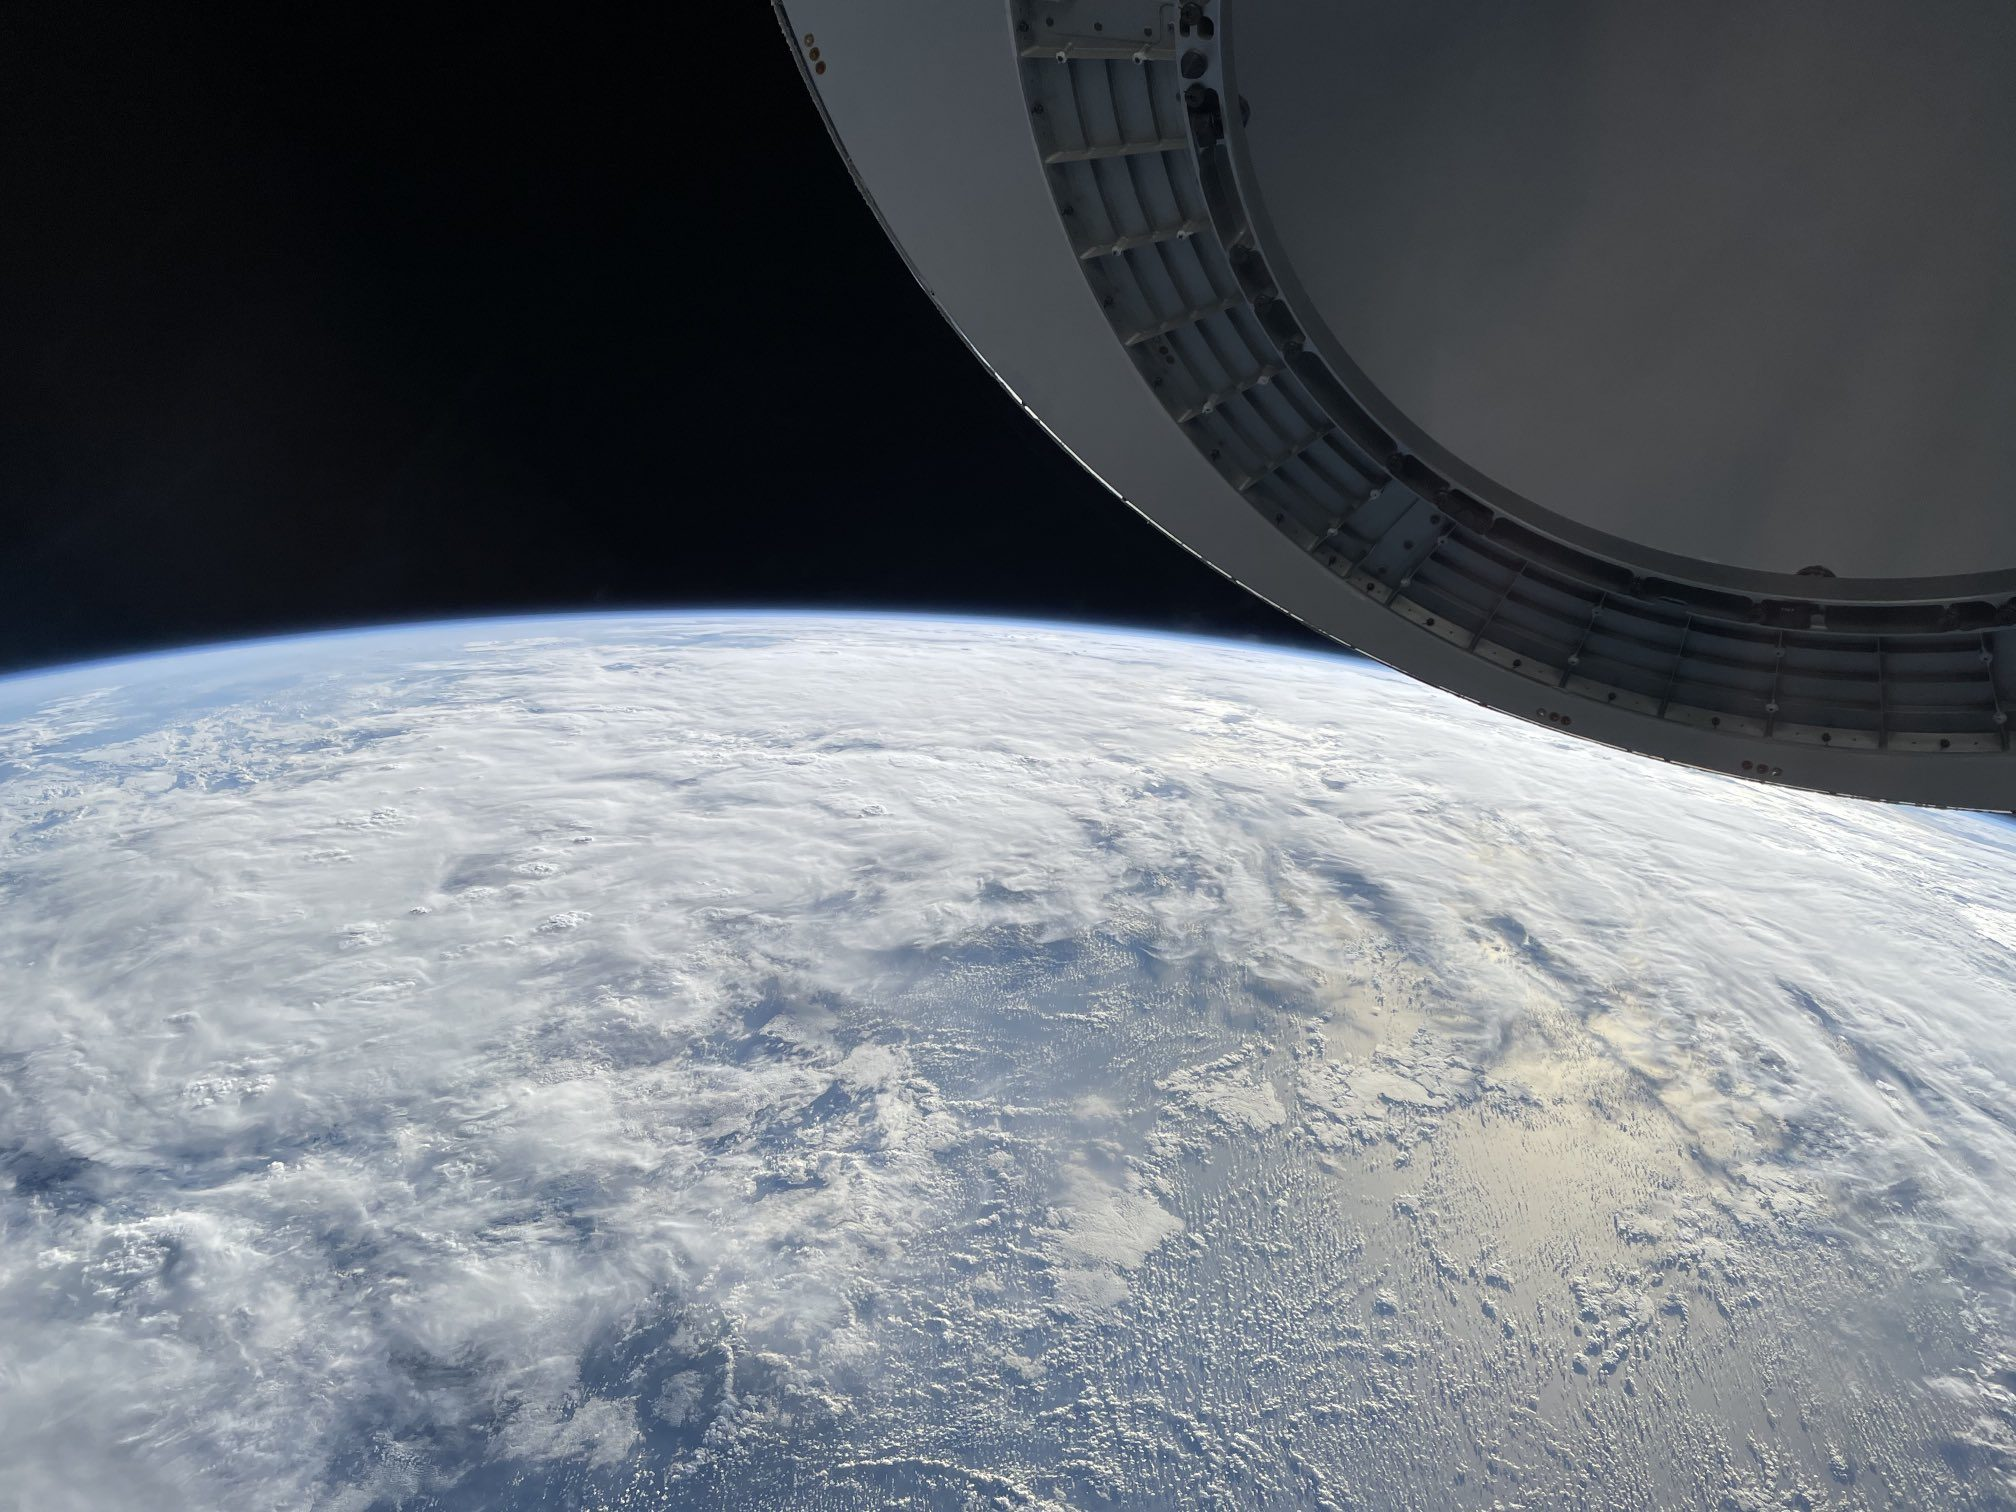 Jared Isaacman shares views from space using an iPhone